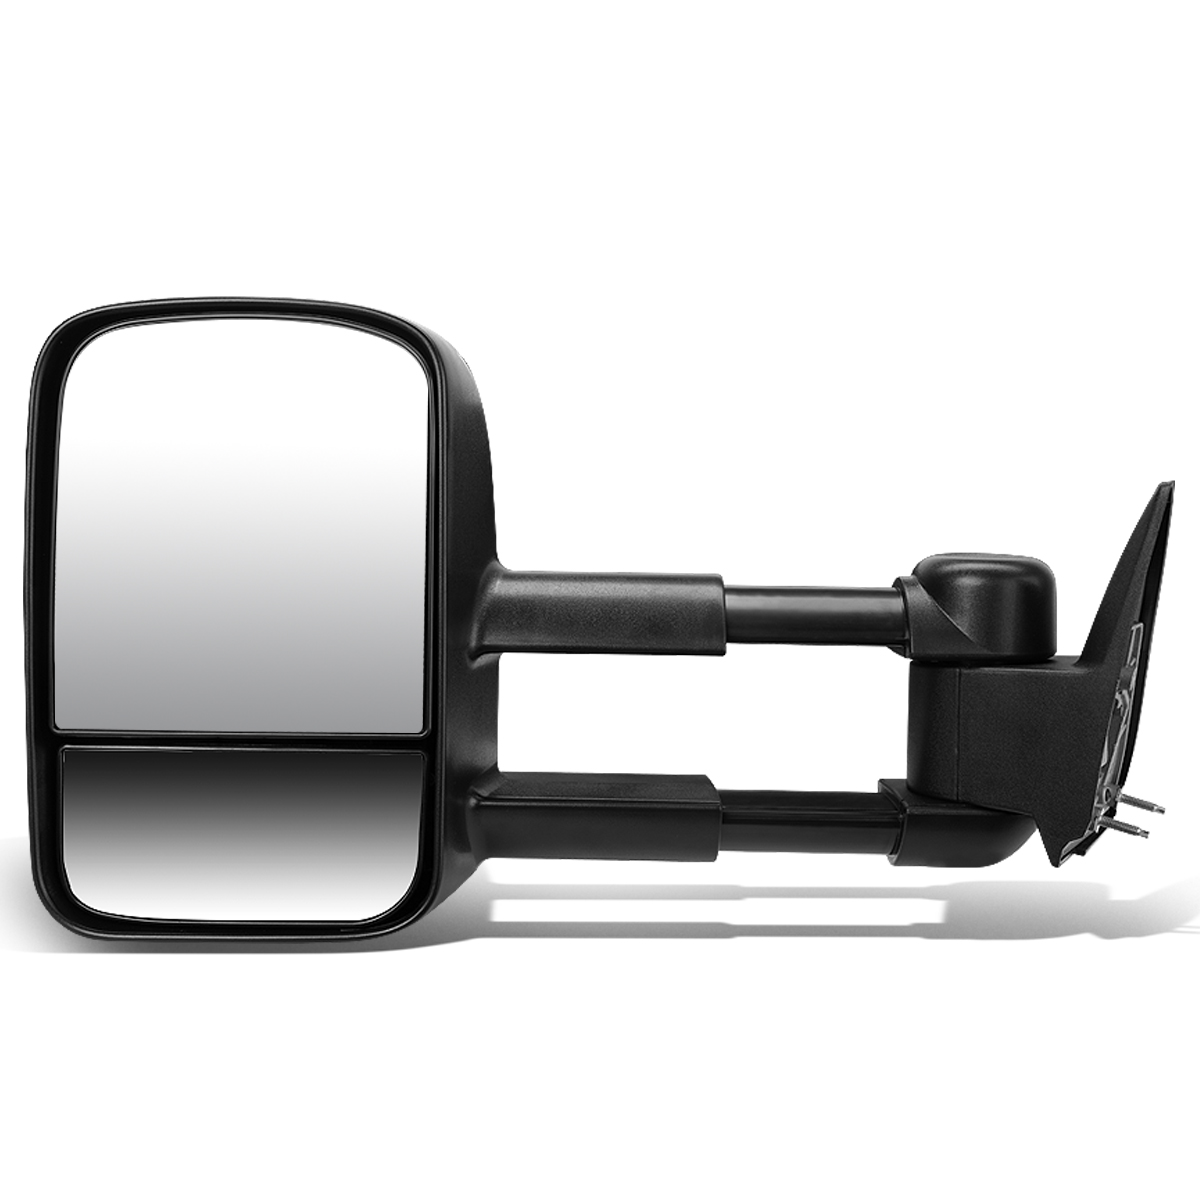 For 1992-1999 Chevy Tahoe/GMC Yukon Manual Adjustment Tow Towing Mirror (Left/Driver)